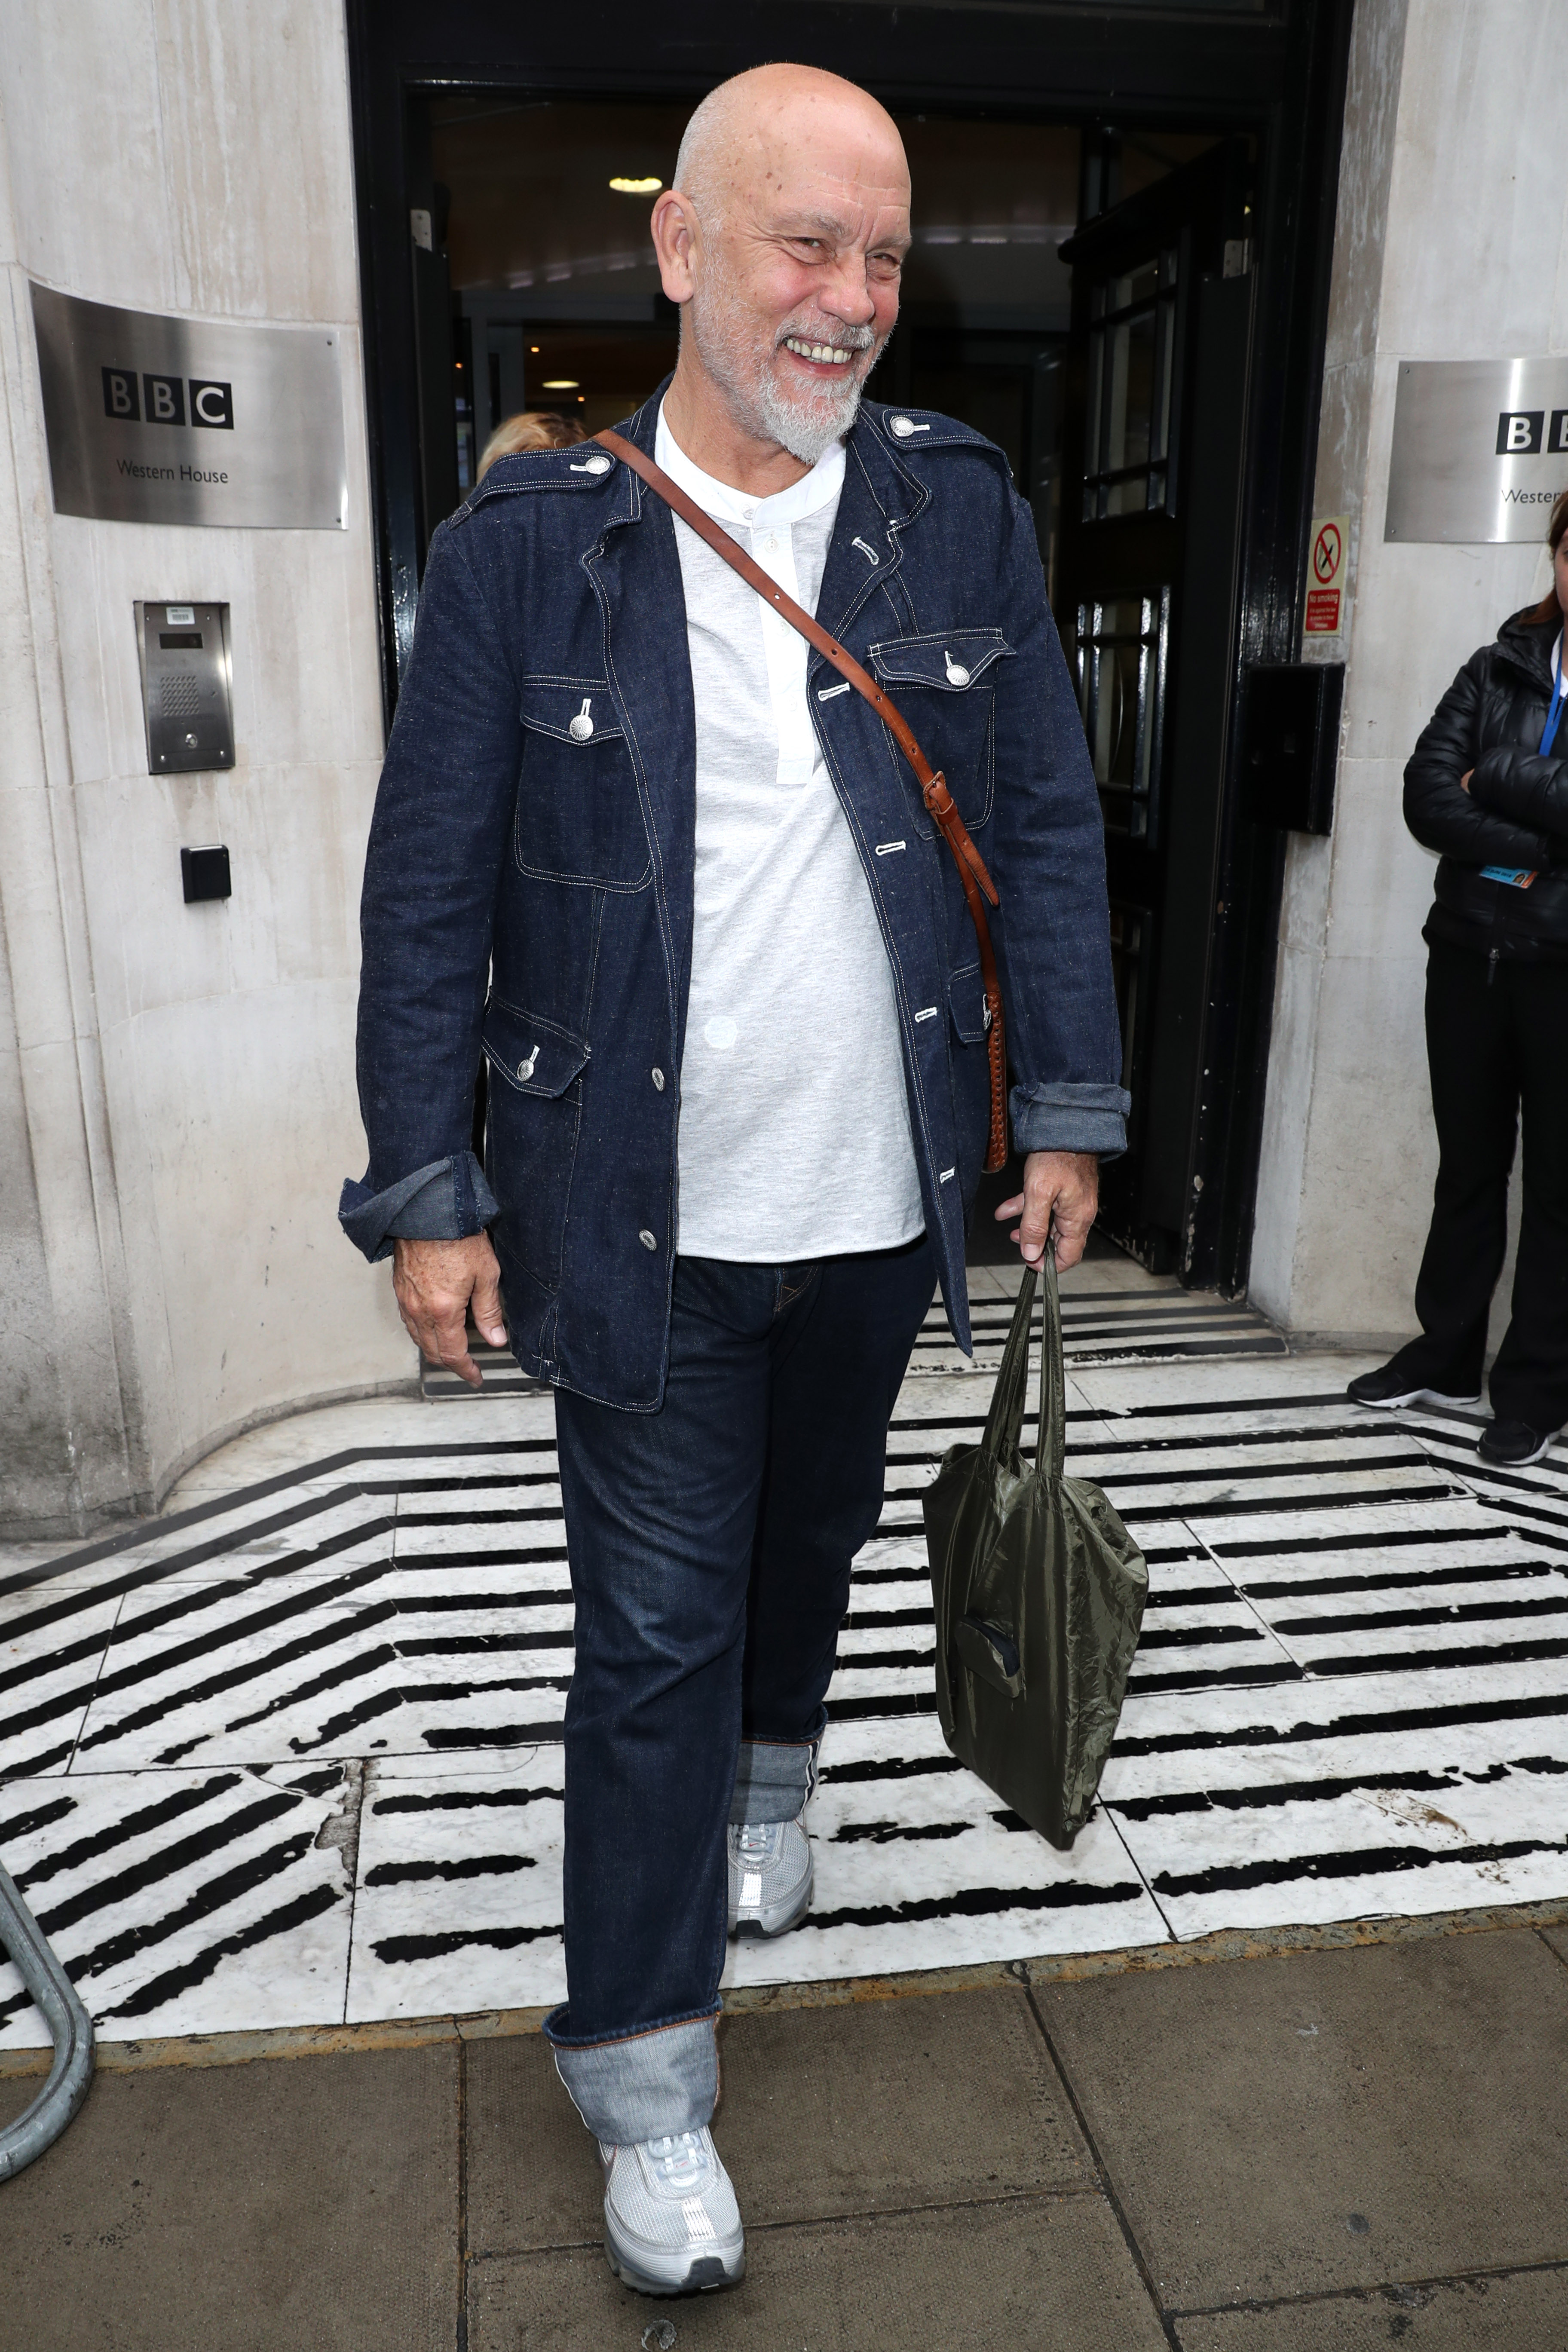 LONDON, UNITED KINGDOM - AUGUST 19: Actor John Malkovich seen leaving the BBC Radio 2 Studios on August 19, 2016 in London, England. (Photo by